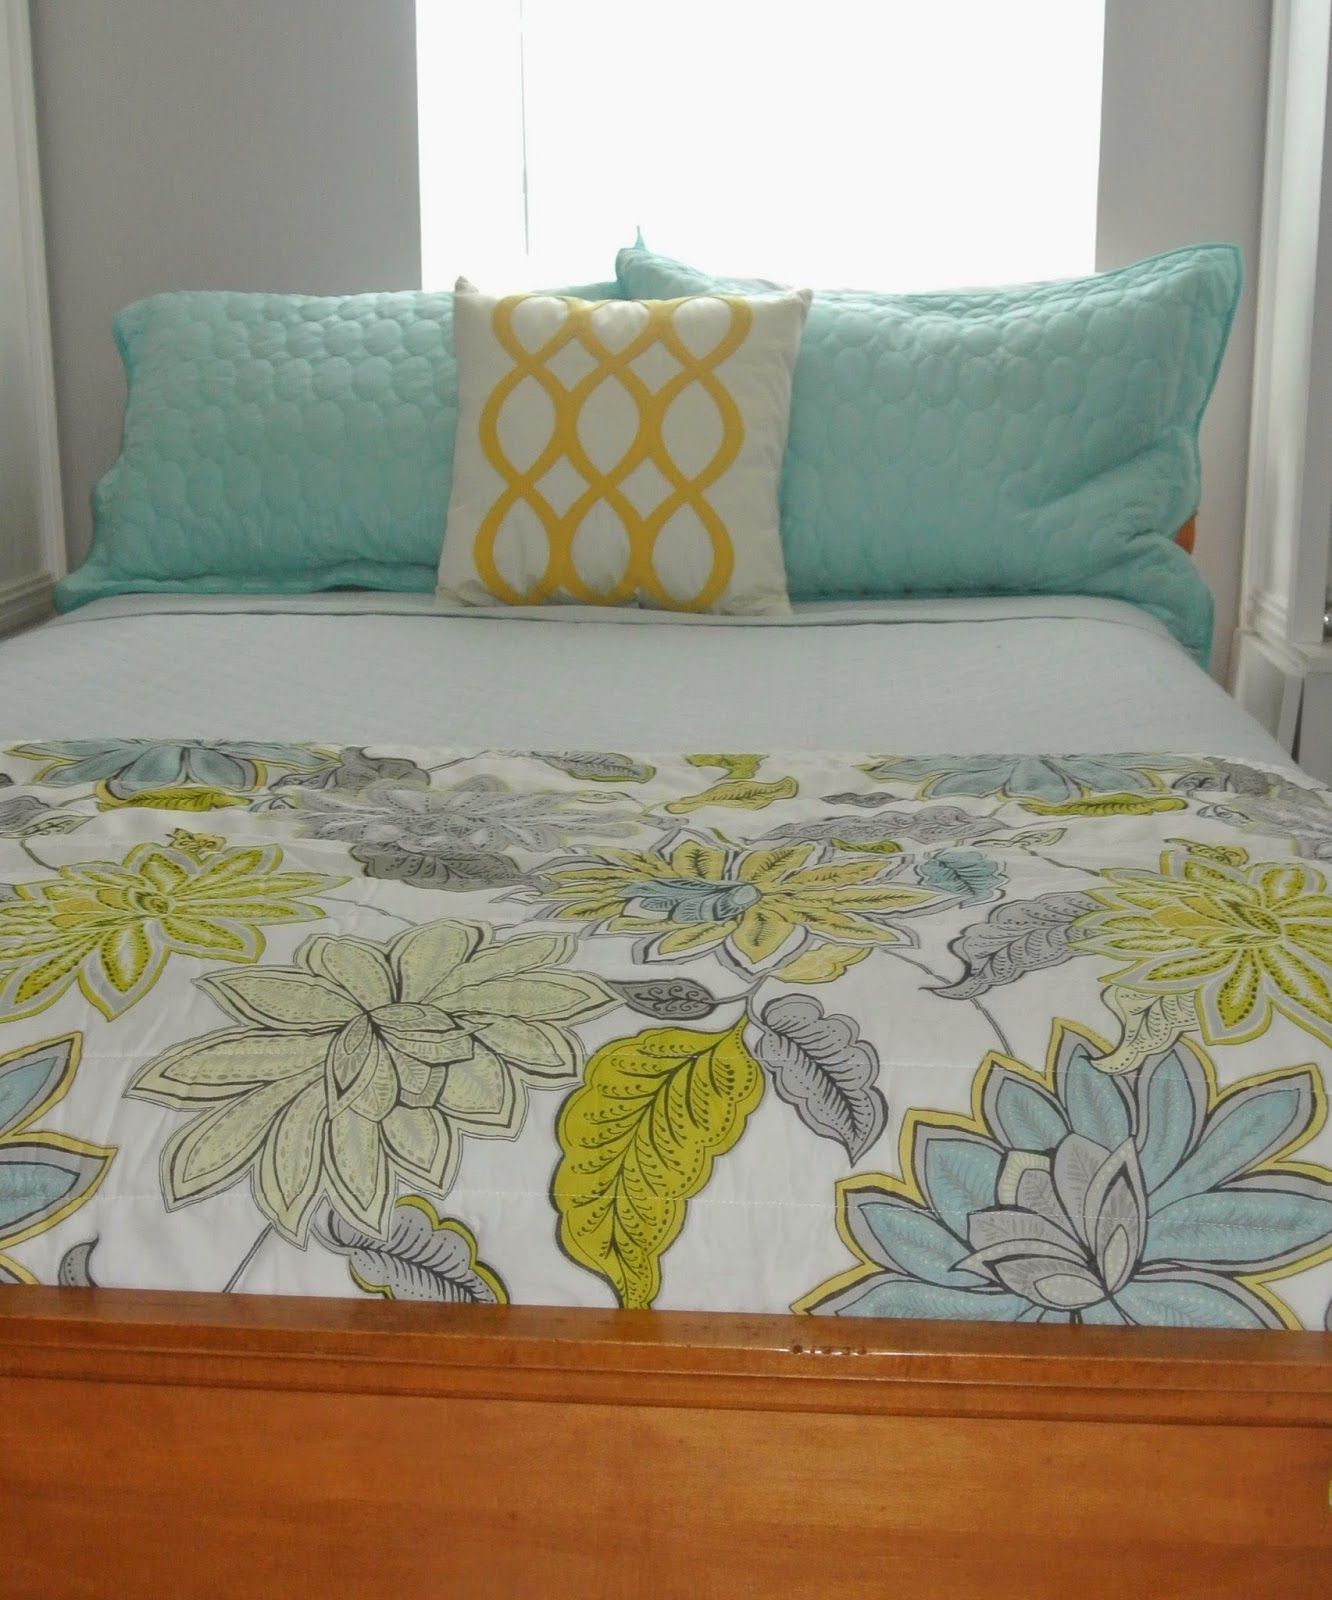 guest bedroom refresh turquoise yellow gray and white